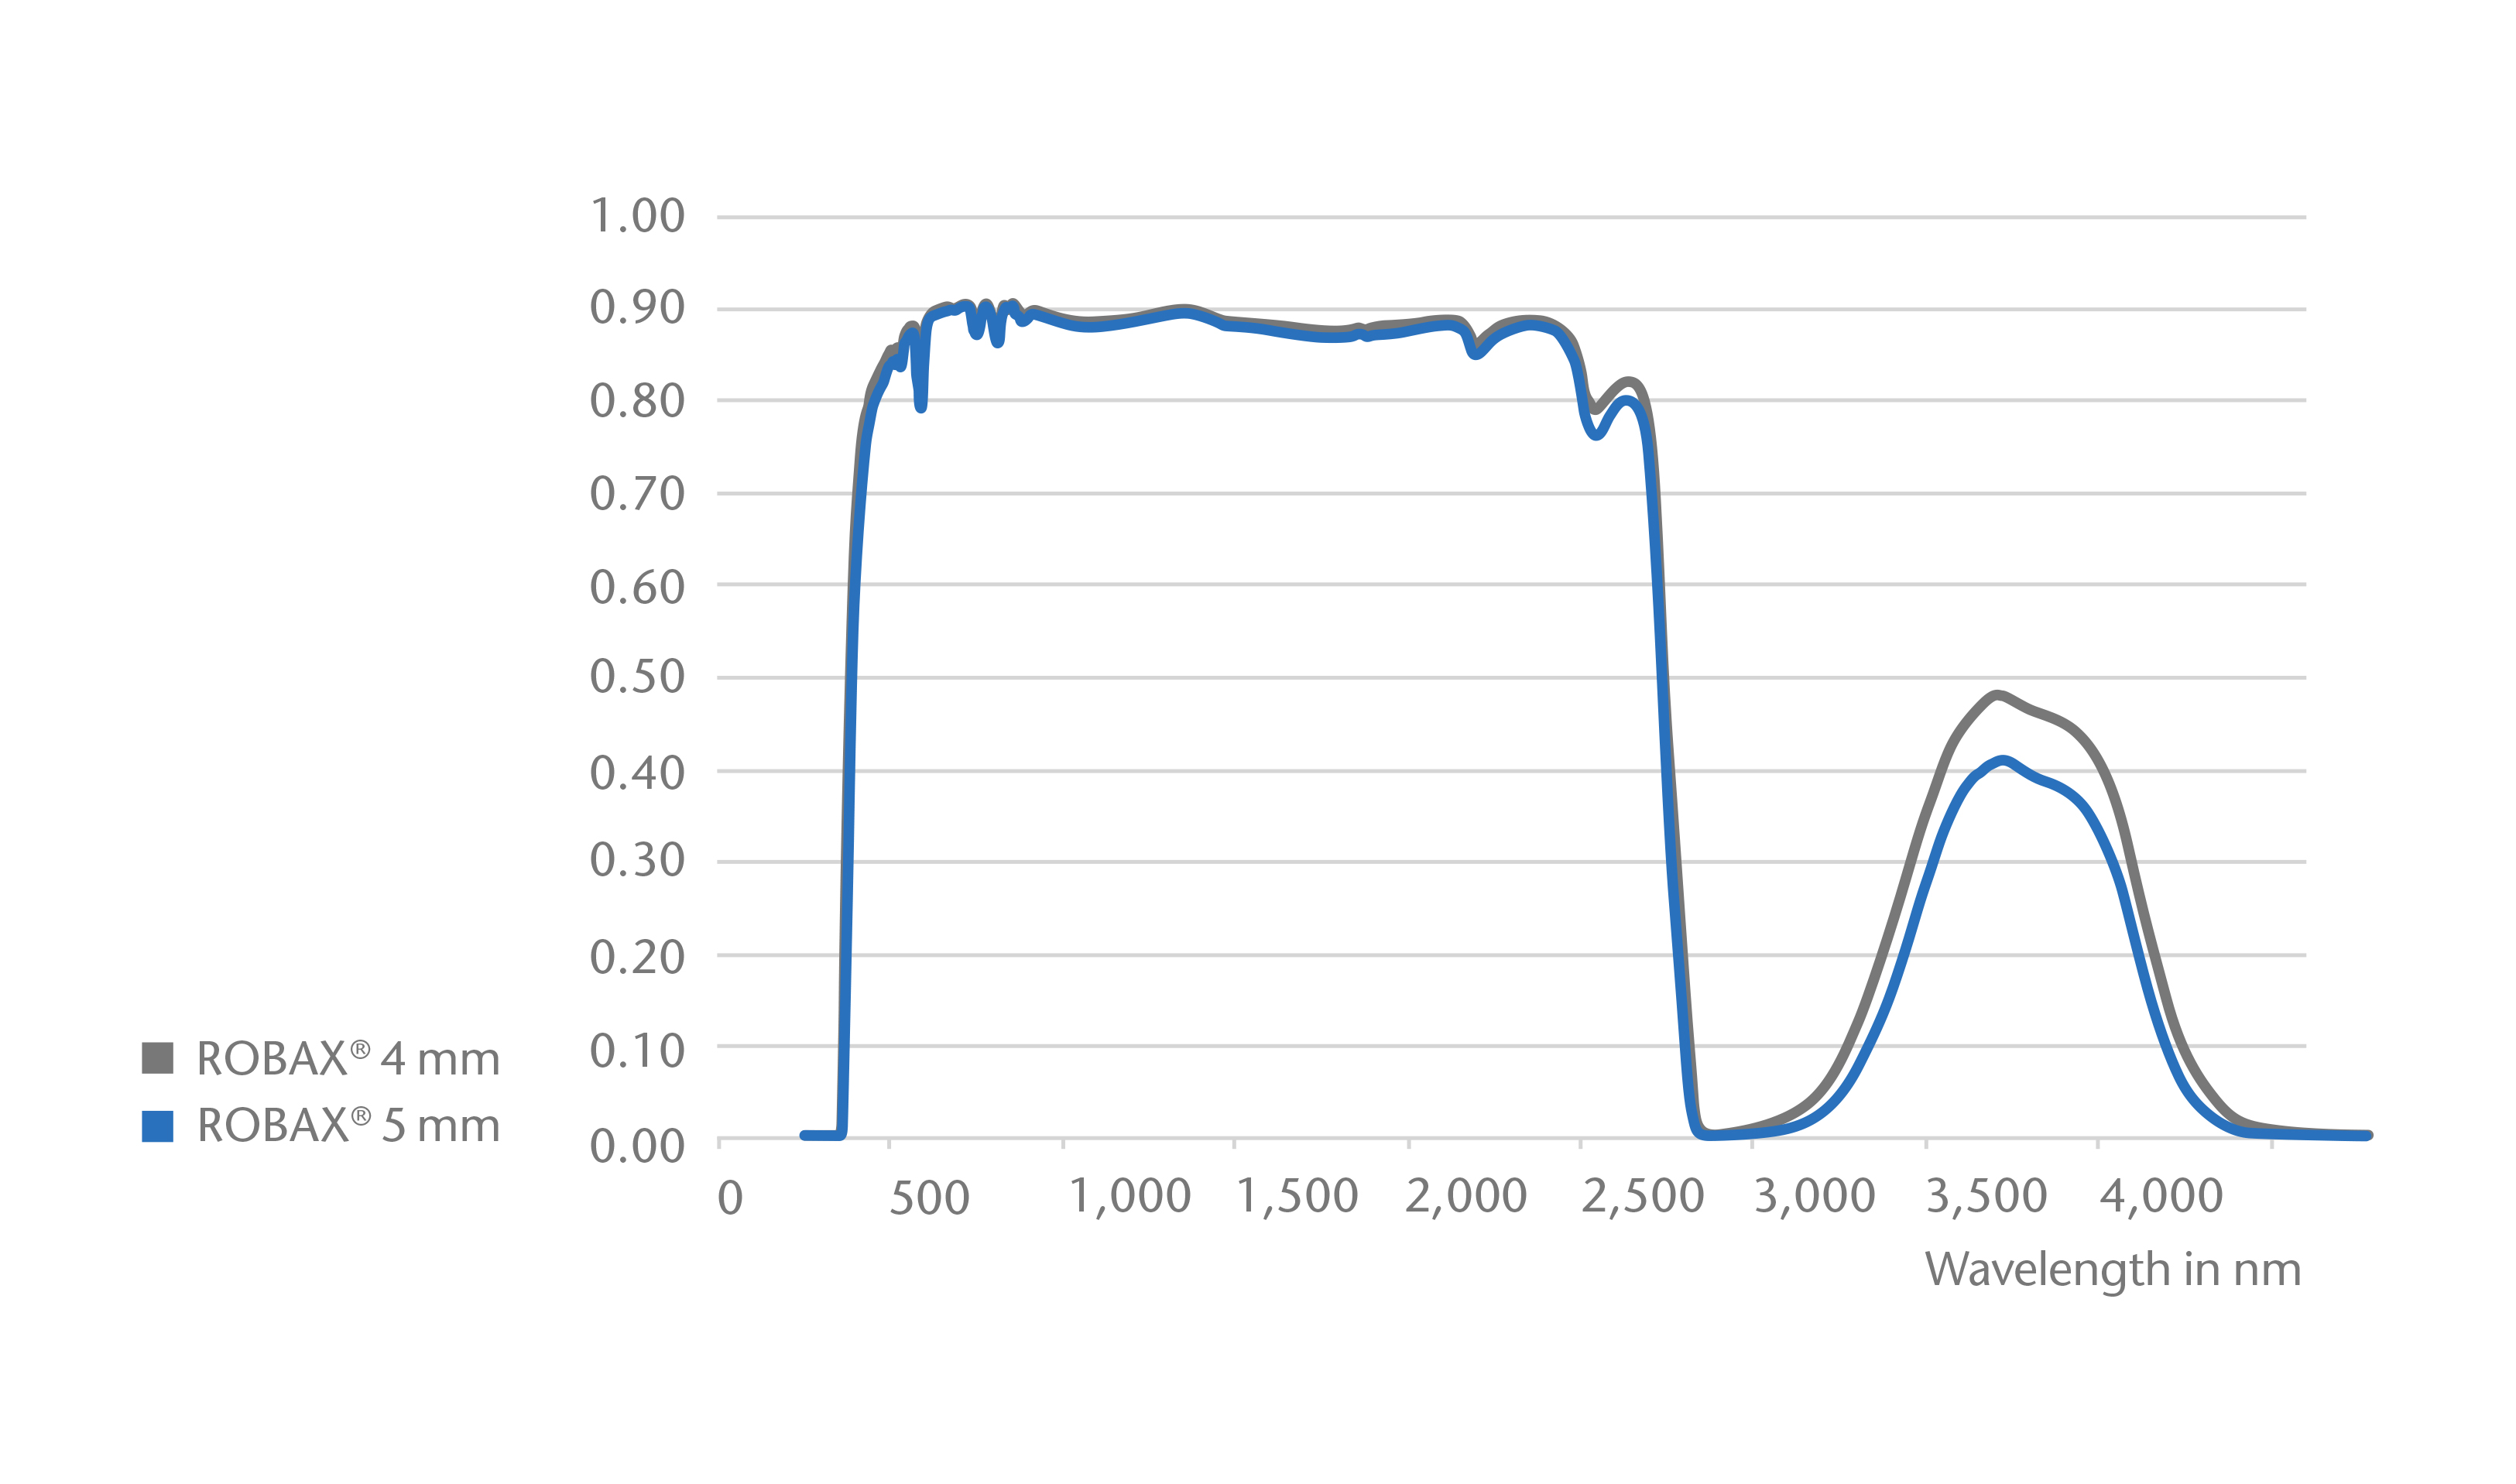 Graph showing the transmission curve of SCHOTT ROBAX® in 4 mm and 5 mm thickness